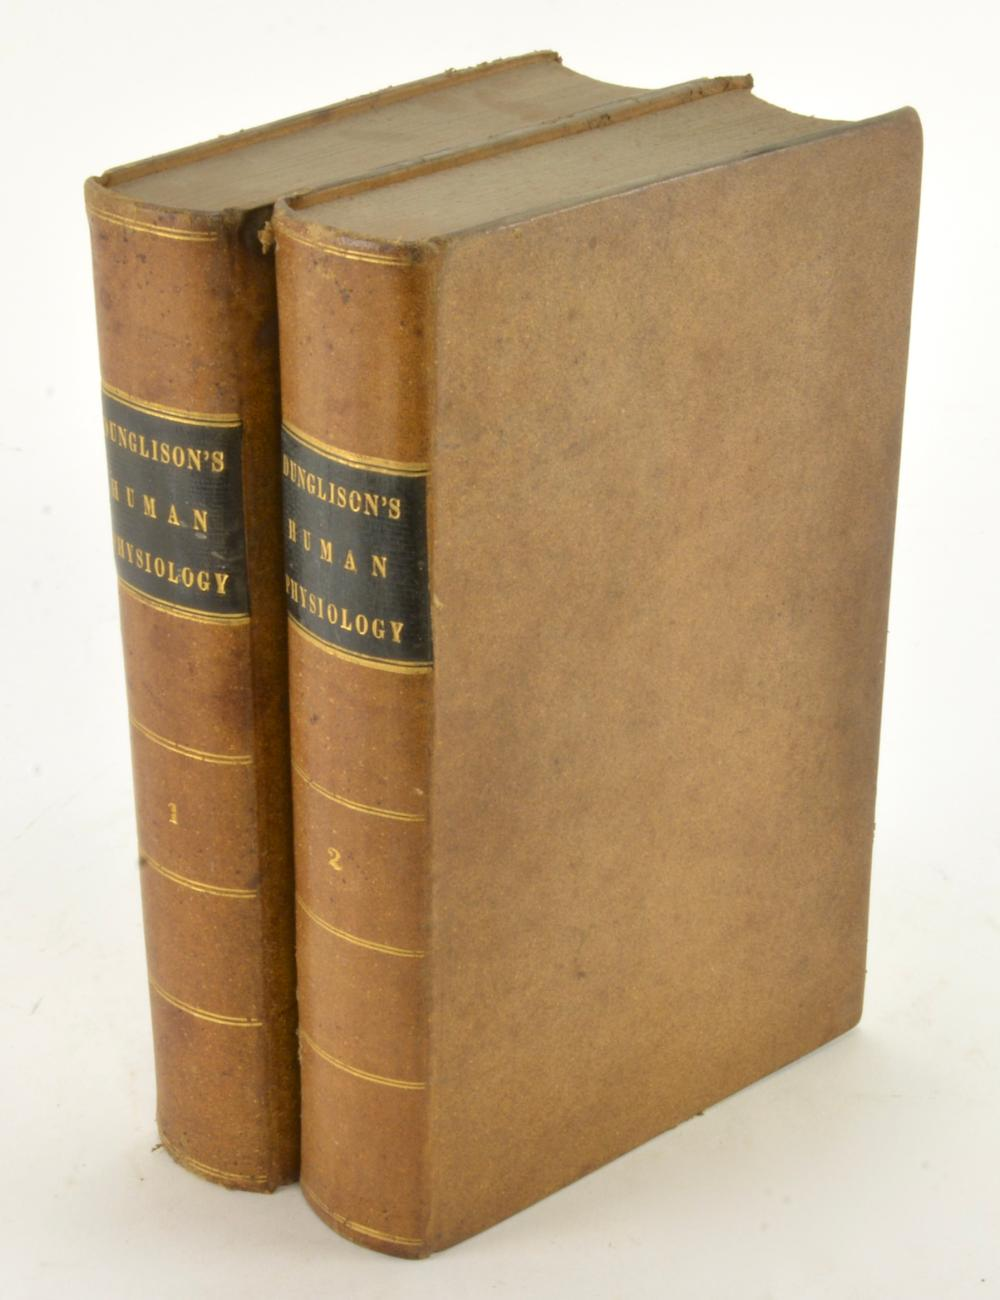 Dunglison's Human Physiology 1844 Philadelphia 2 Vol Set